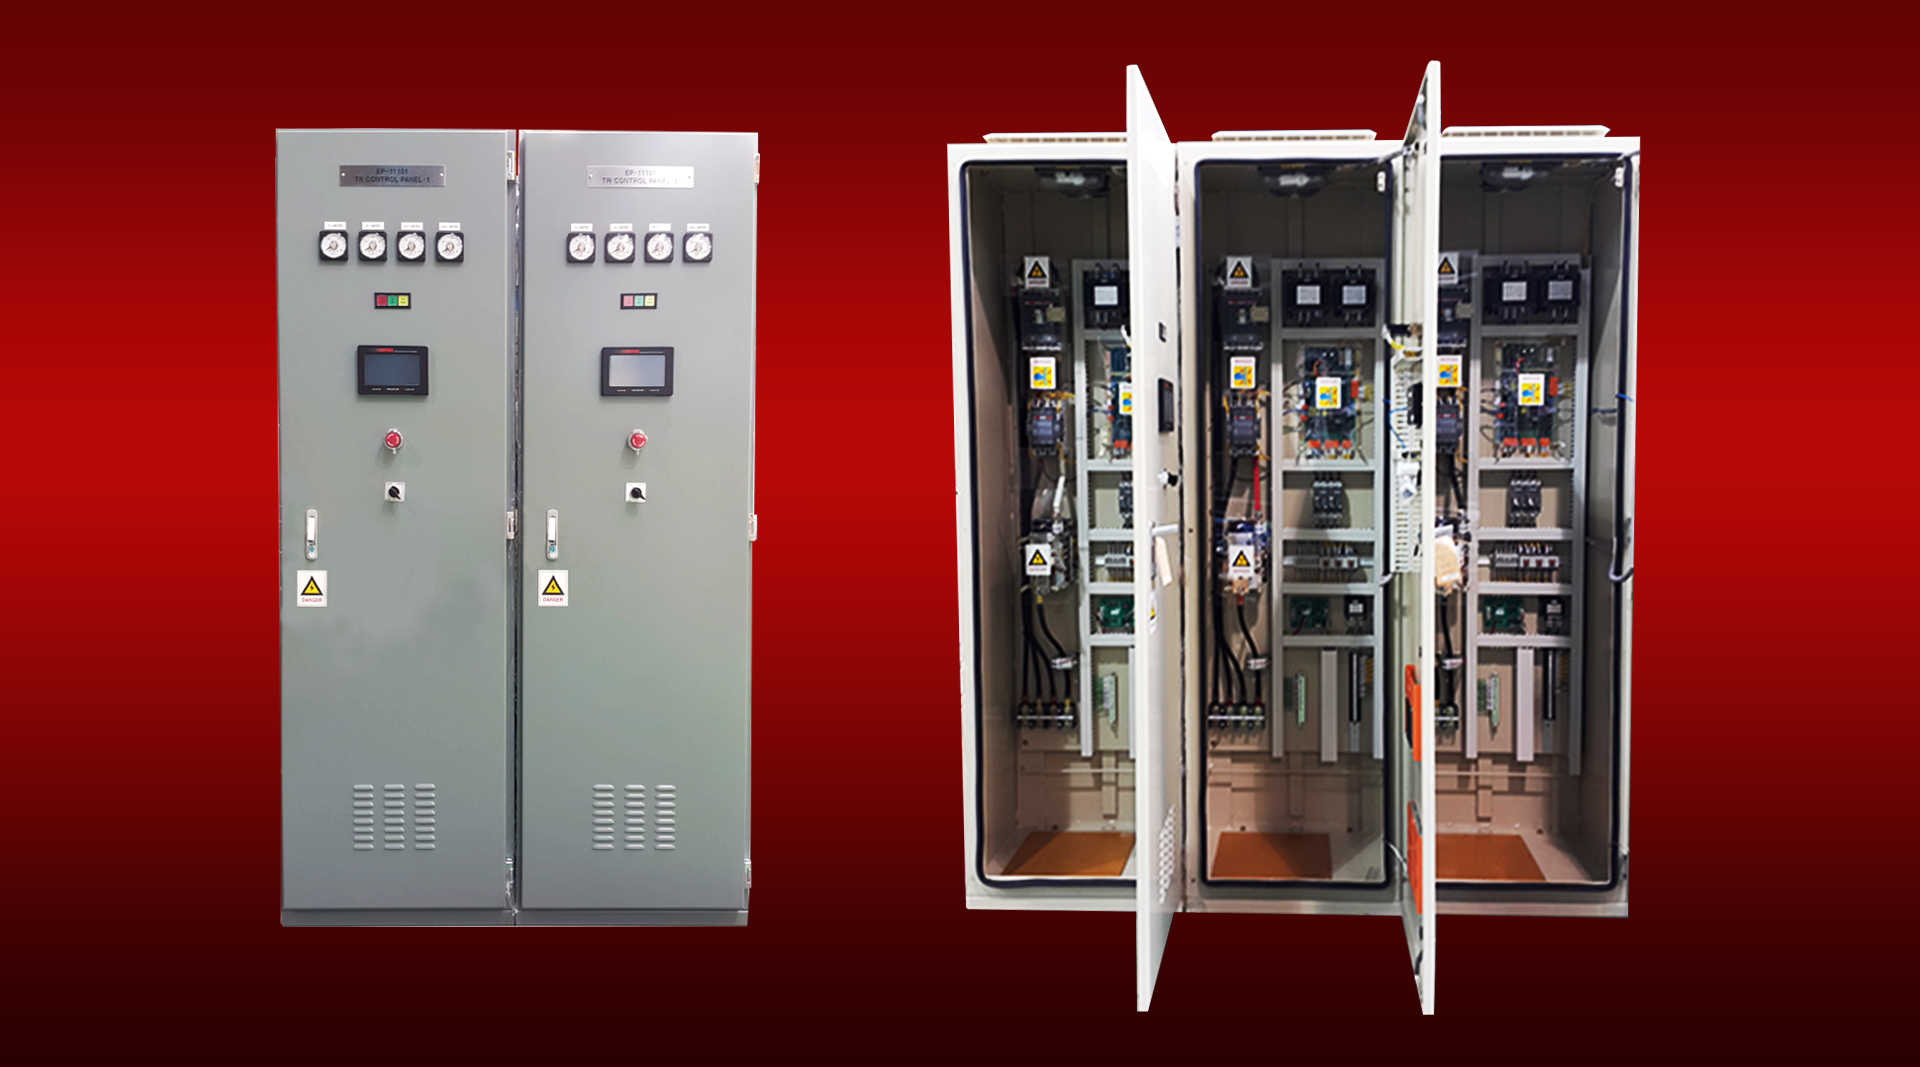 03_02Transformer-rectifier-control-panel_1